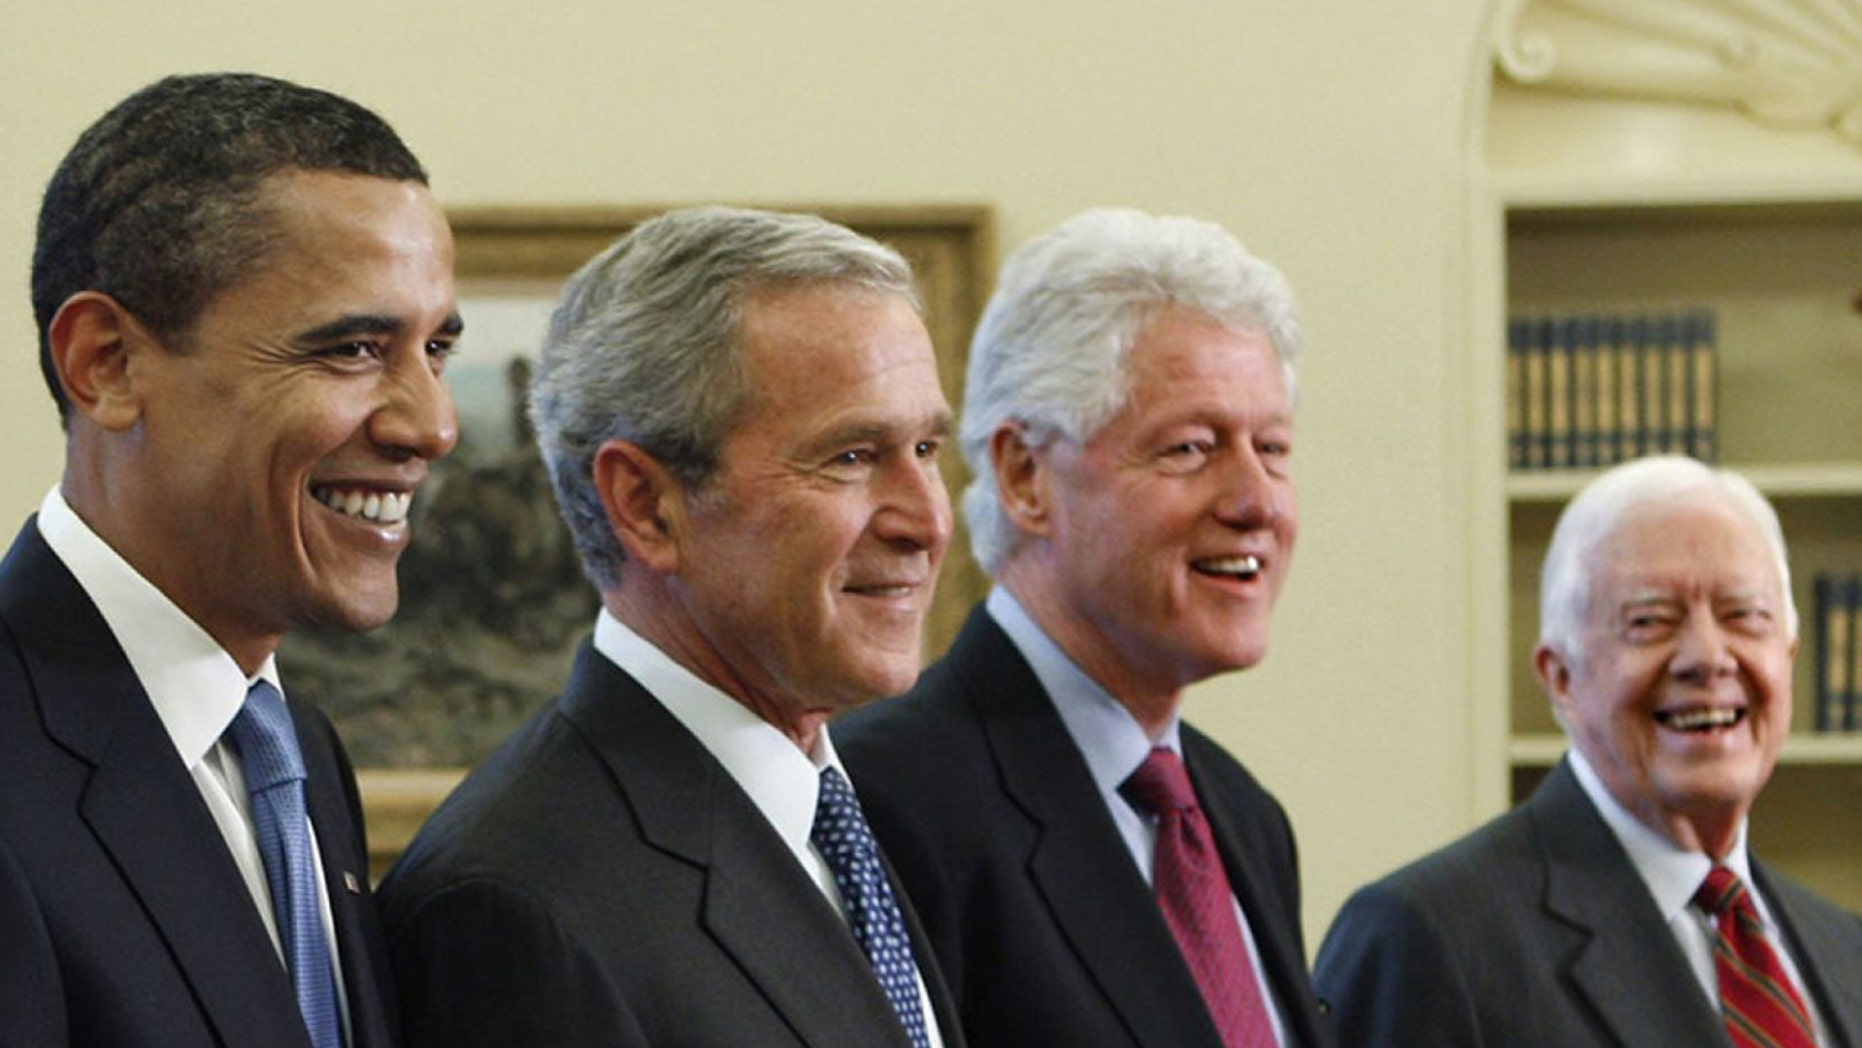 Former Presidents Barack Obama, George W. Bush, Bill Clinton, and Jimmy Carter, pose in the Oval Office of the White House.